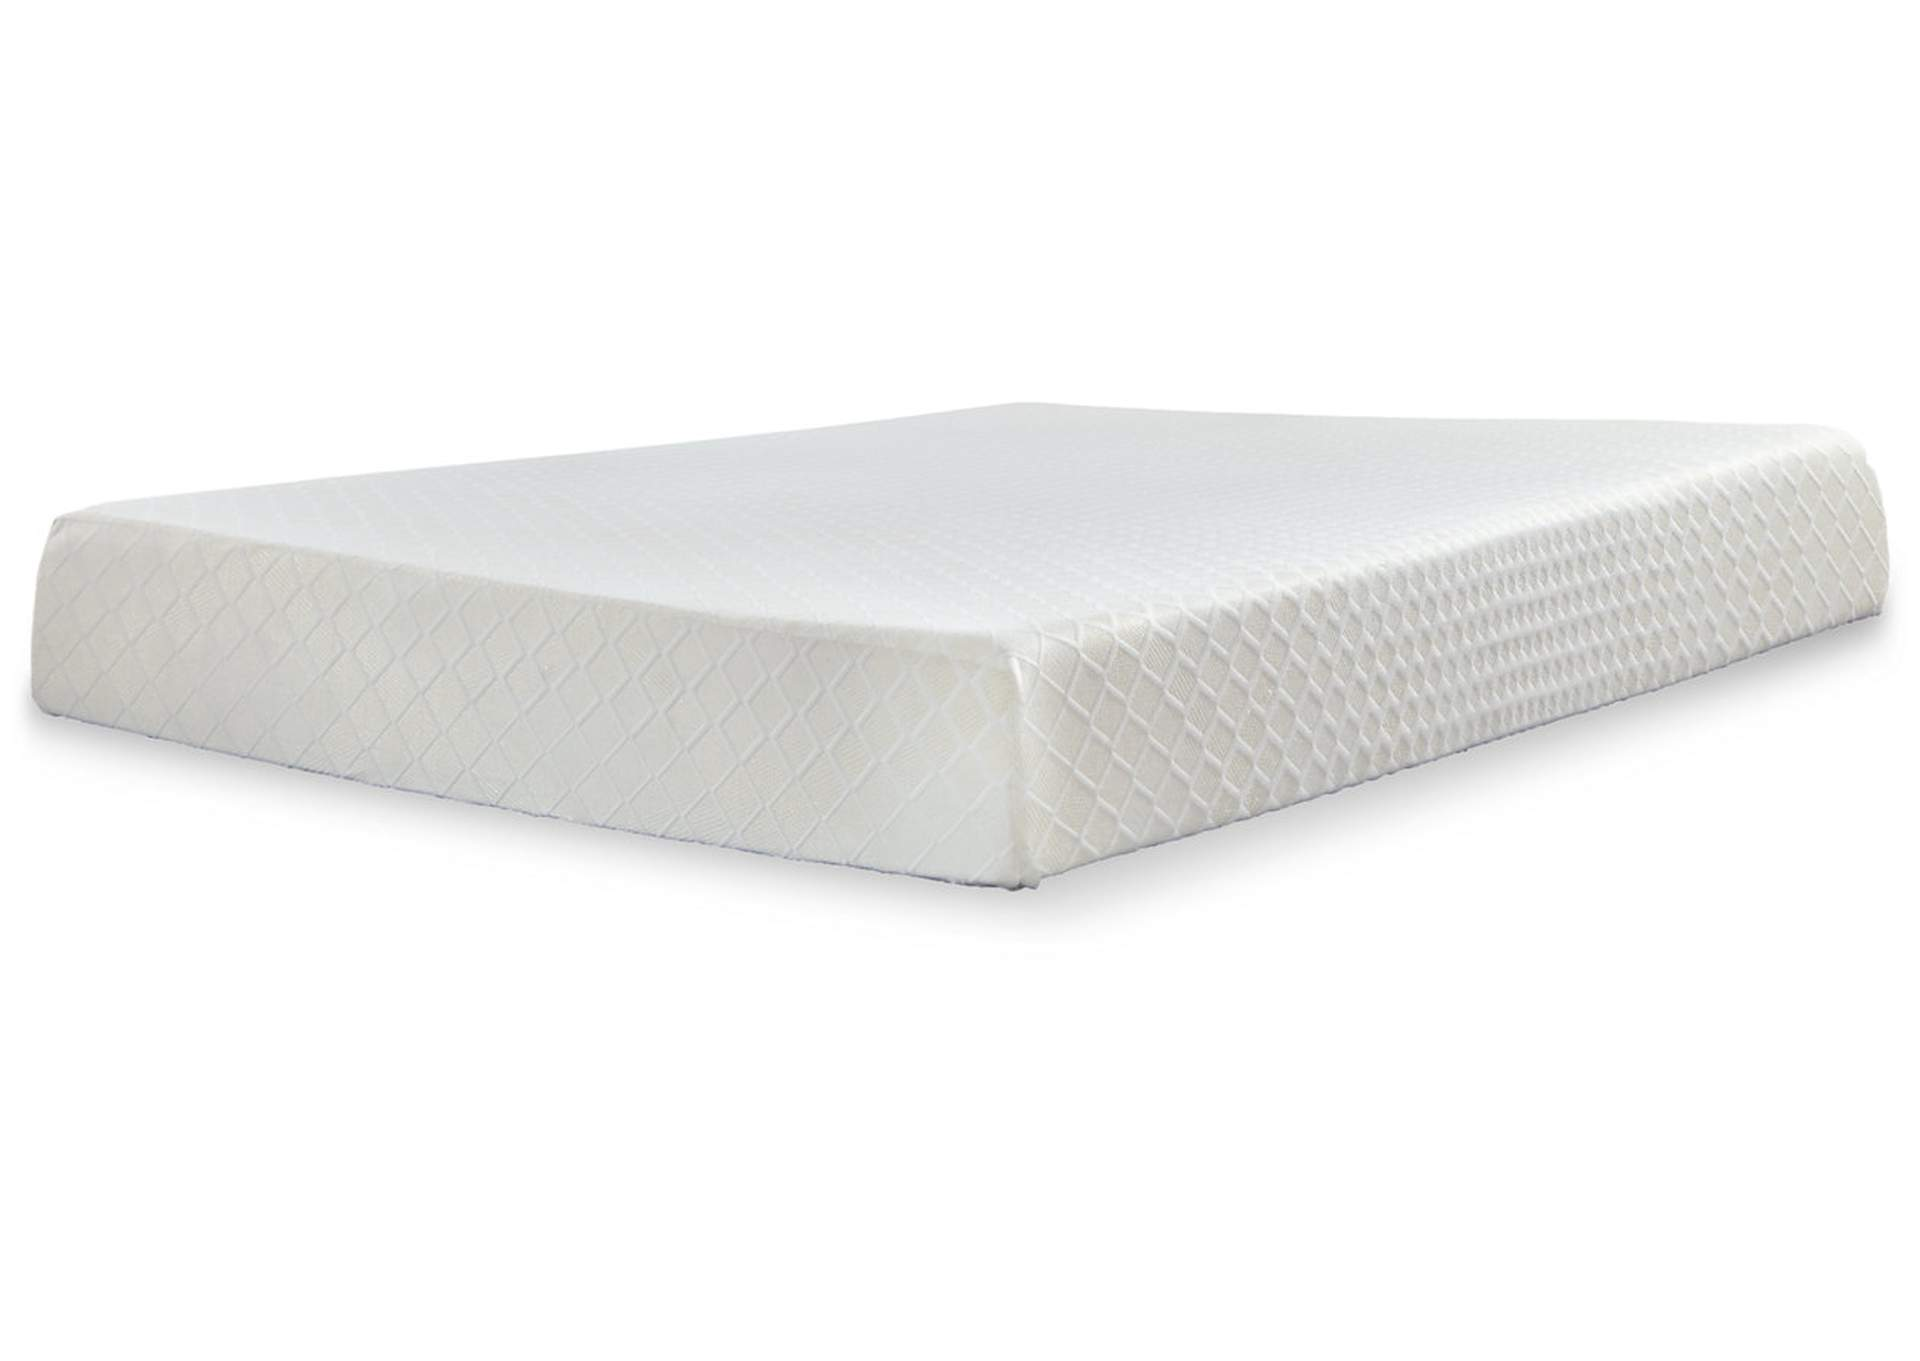 10 Inch Chime Memory Foam Queen Mattress in a Box,Sierra Sleep by Ashley